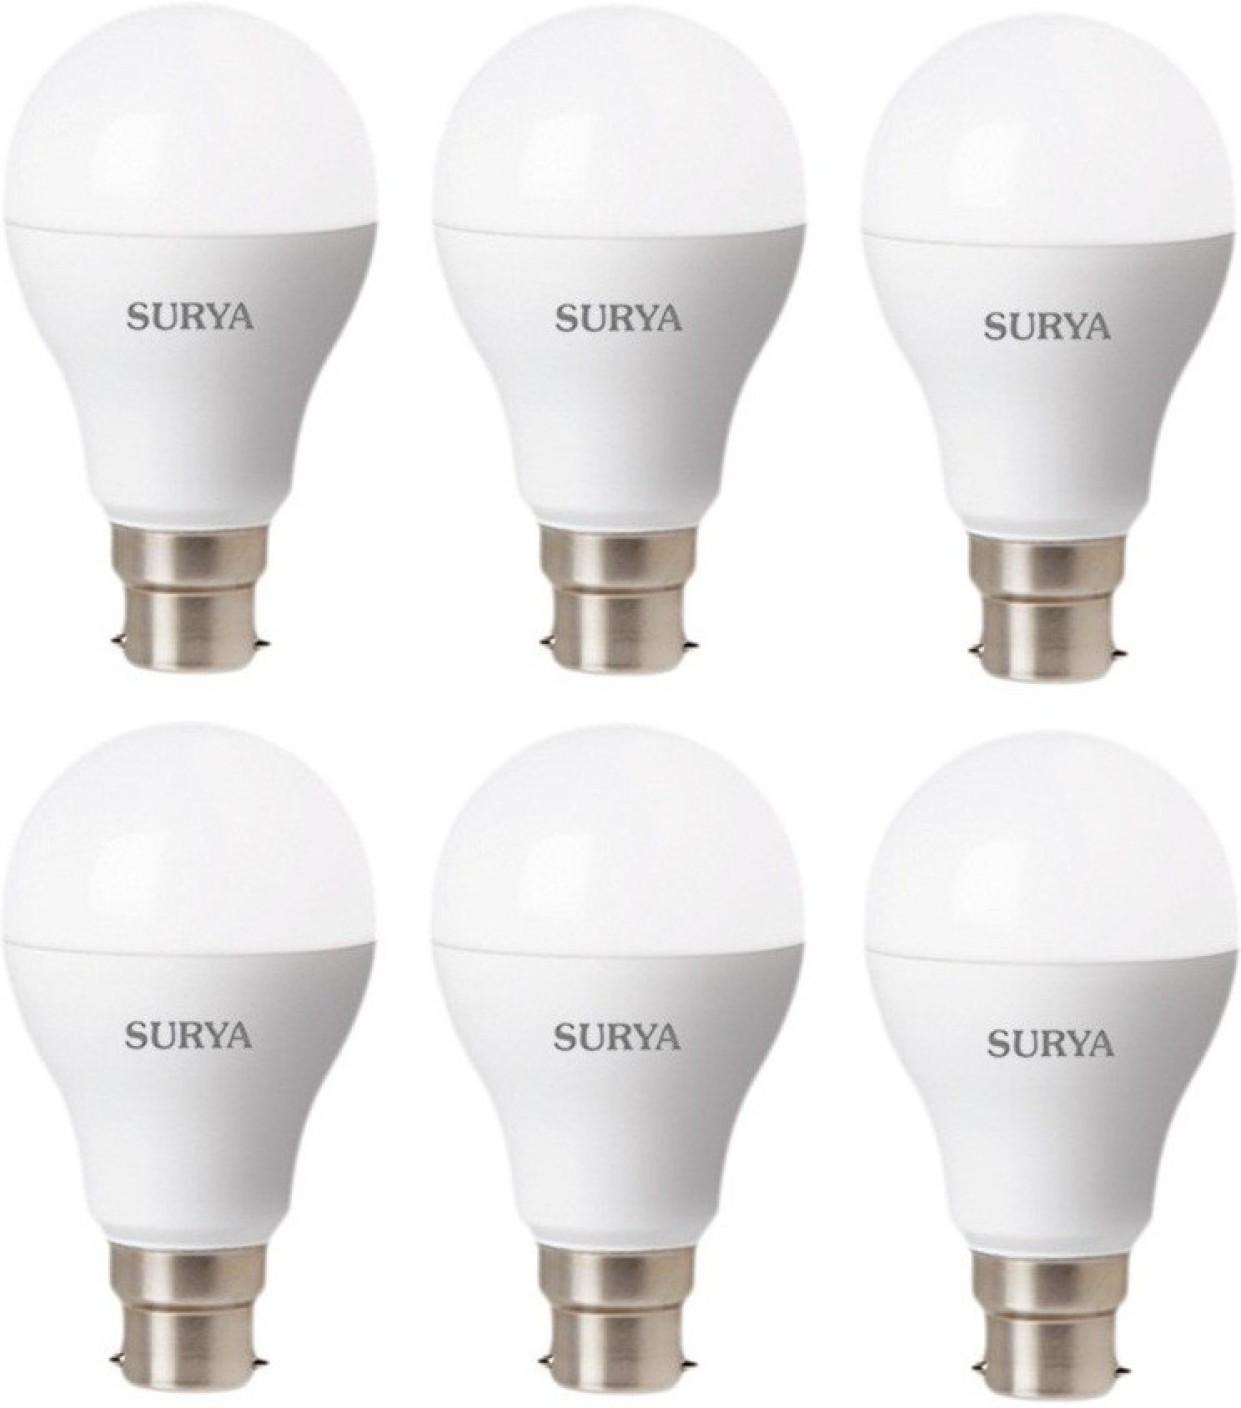 Shell Credit Card Online Services >> Surya 12 W Standard B22 LED Bulb Price in India - Buy Surya 12 W Standard B22 LED Bulb online at ...